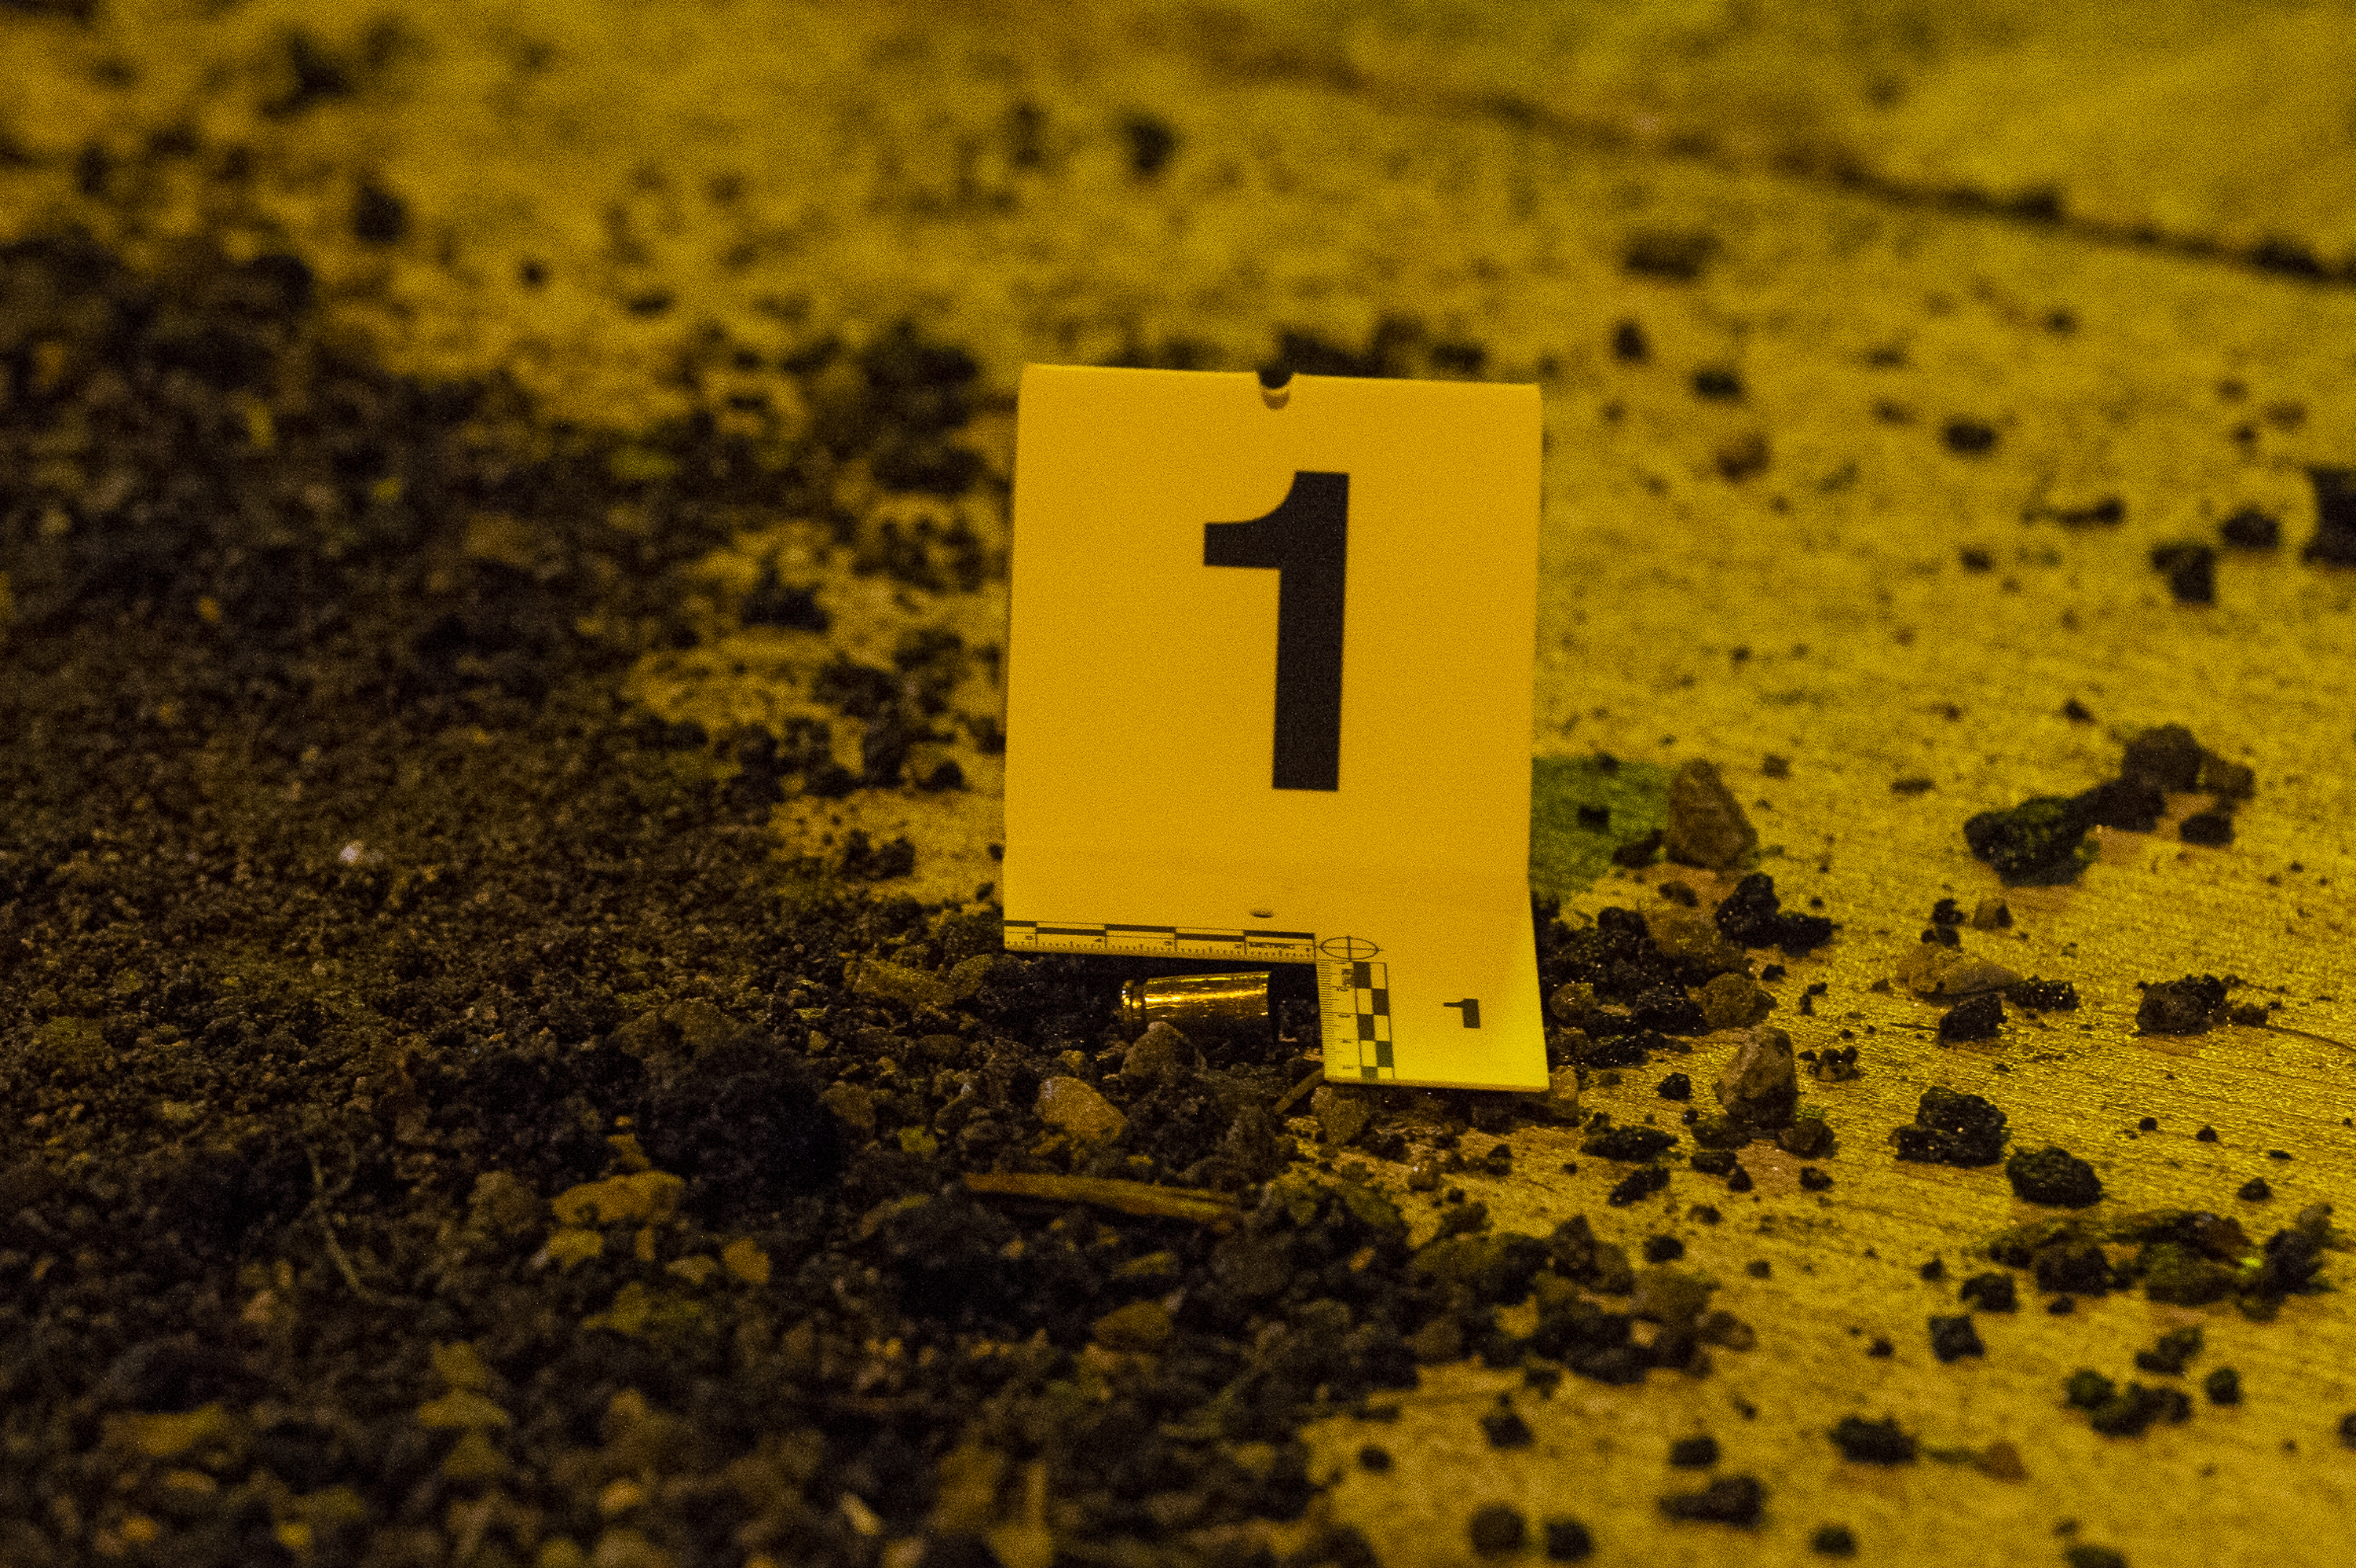 A man was fatally shot April 13, 2021 in Hegewisch.